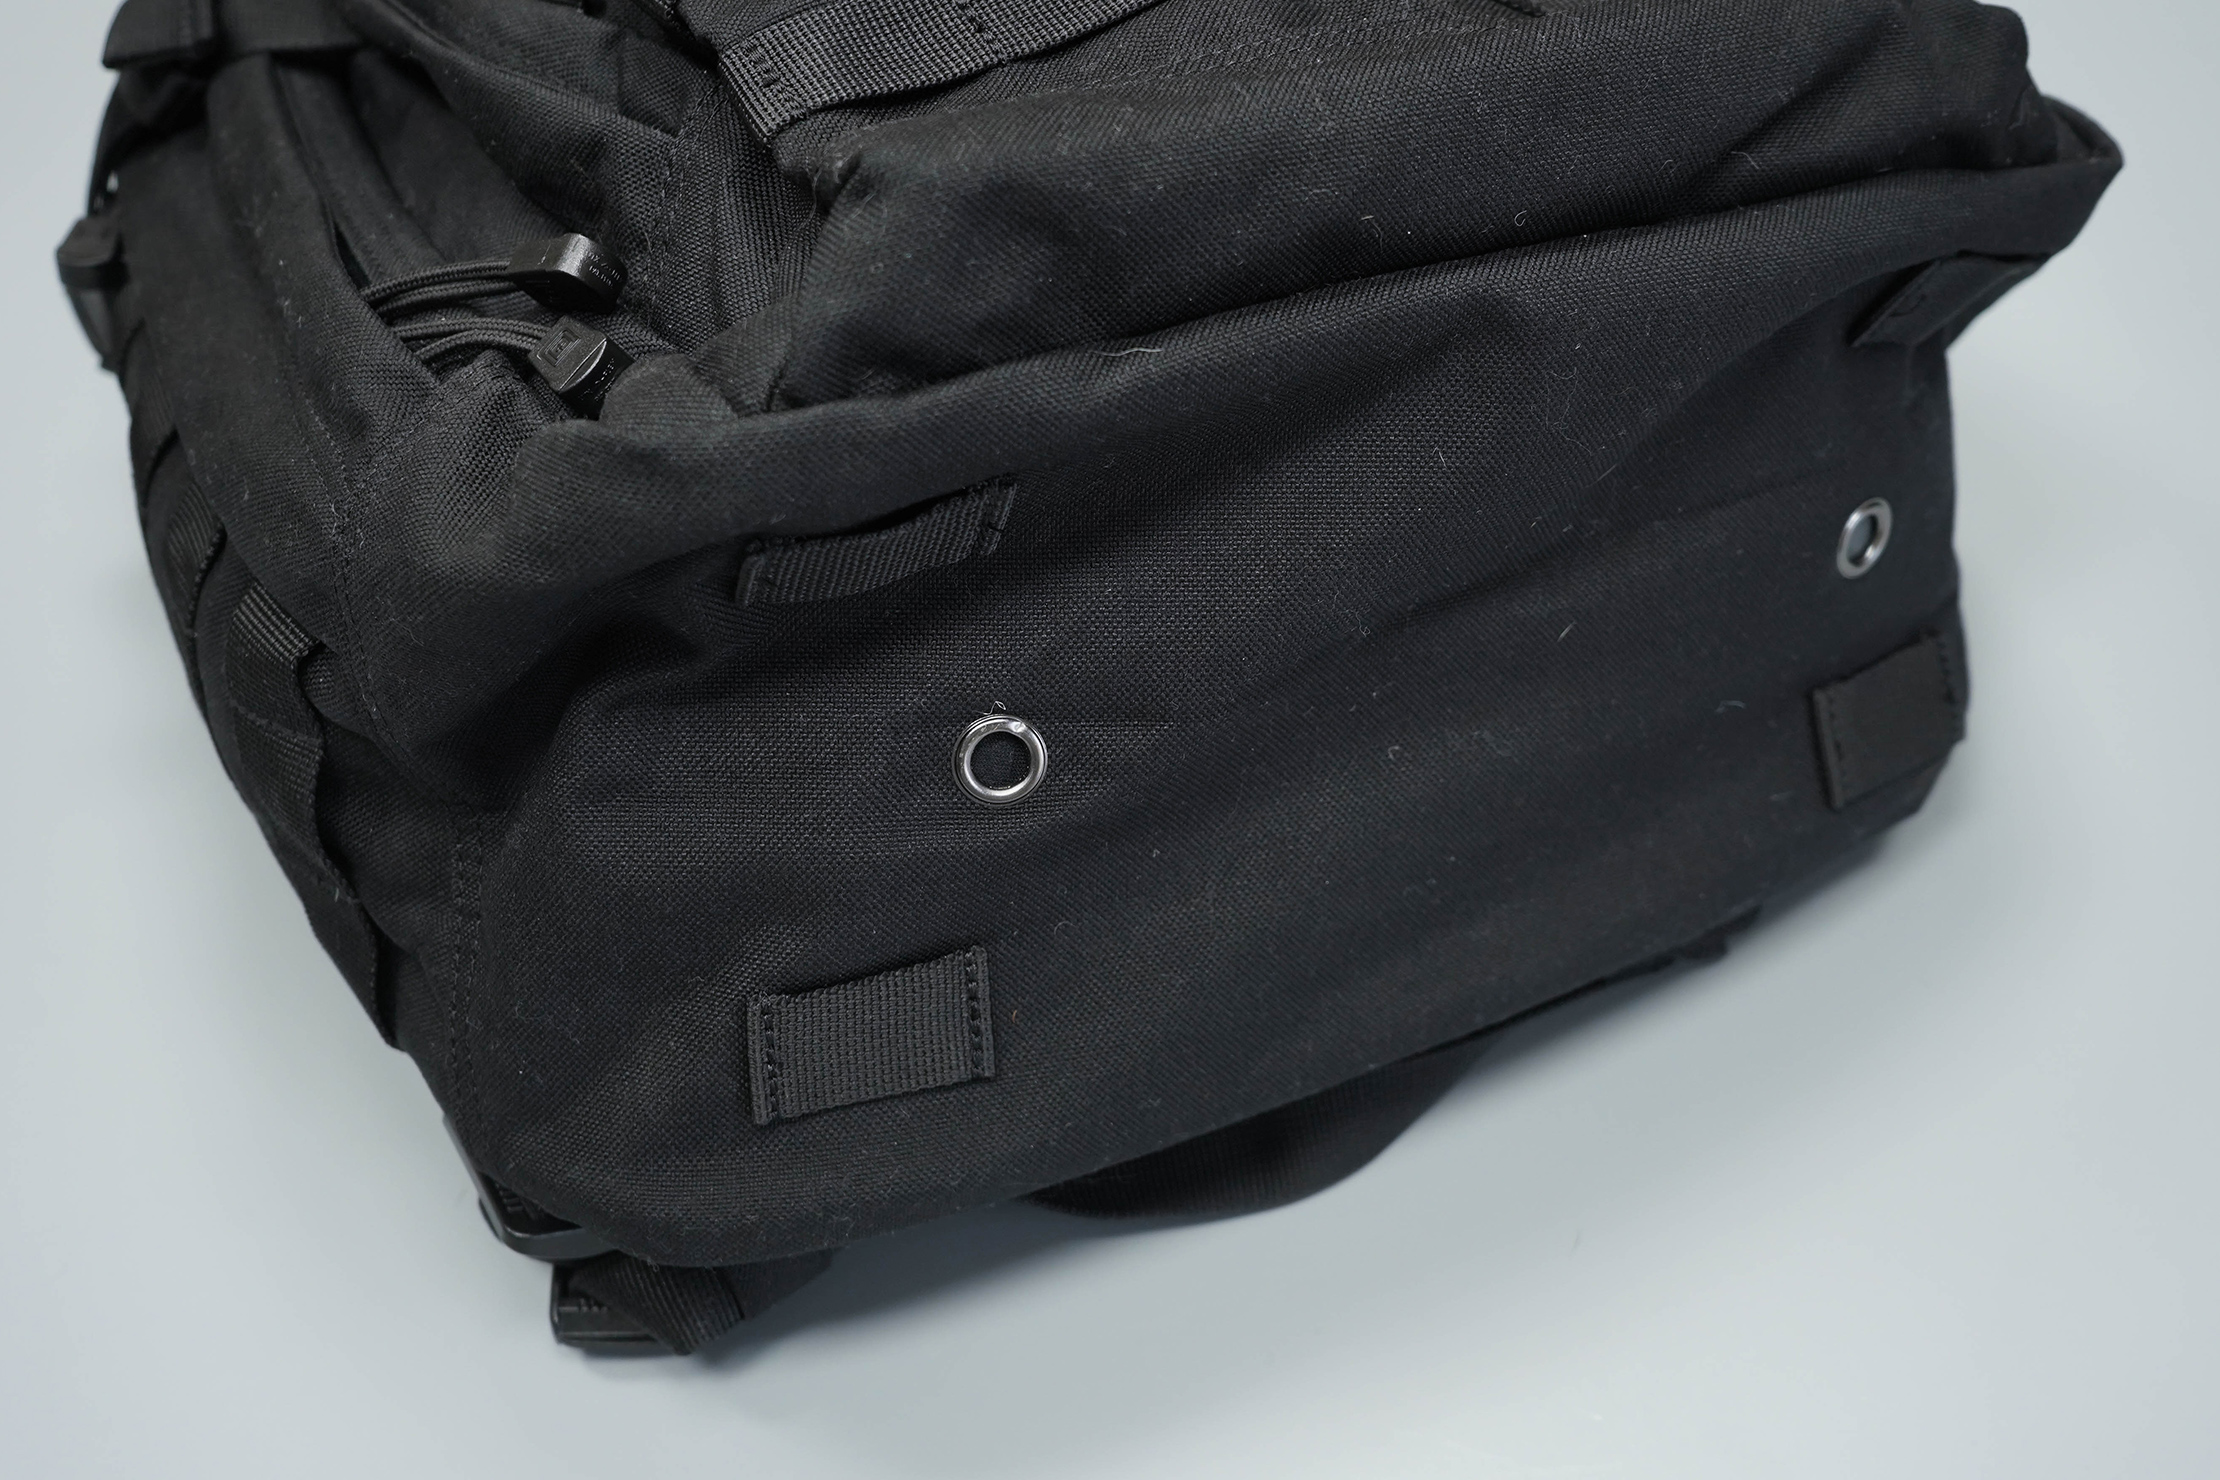 5.11 Tactical Rush24 Backpack Bottom